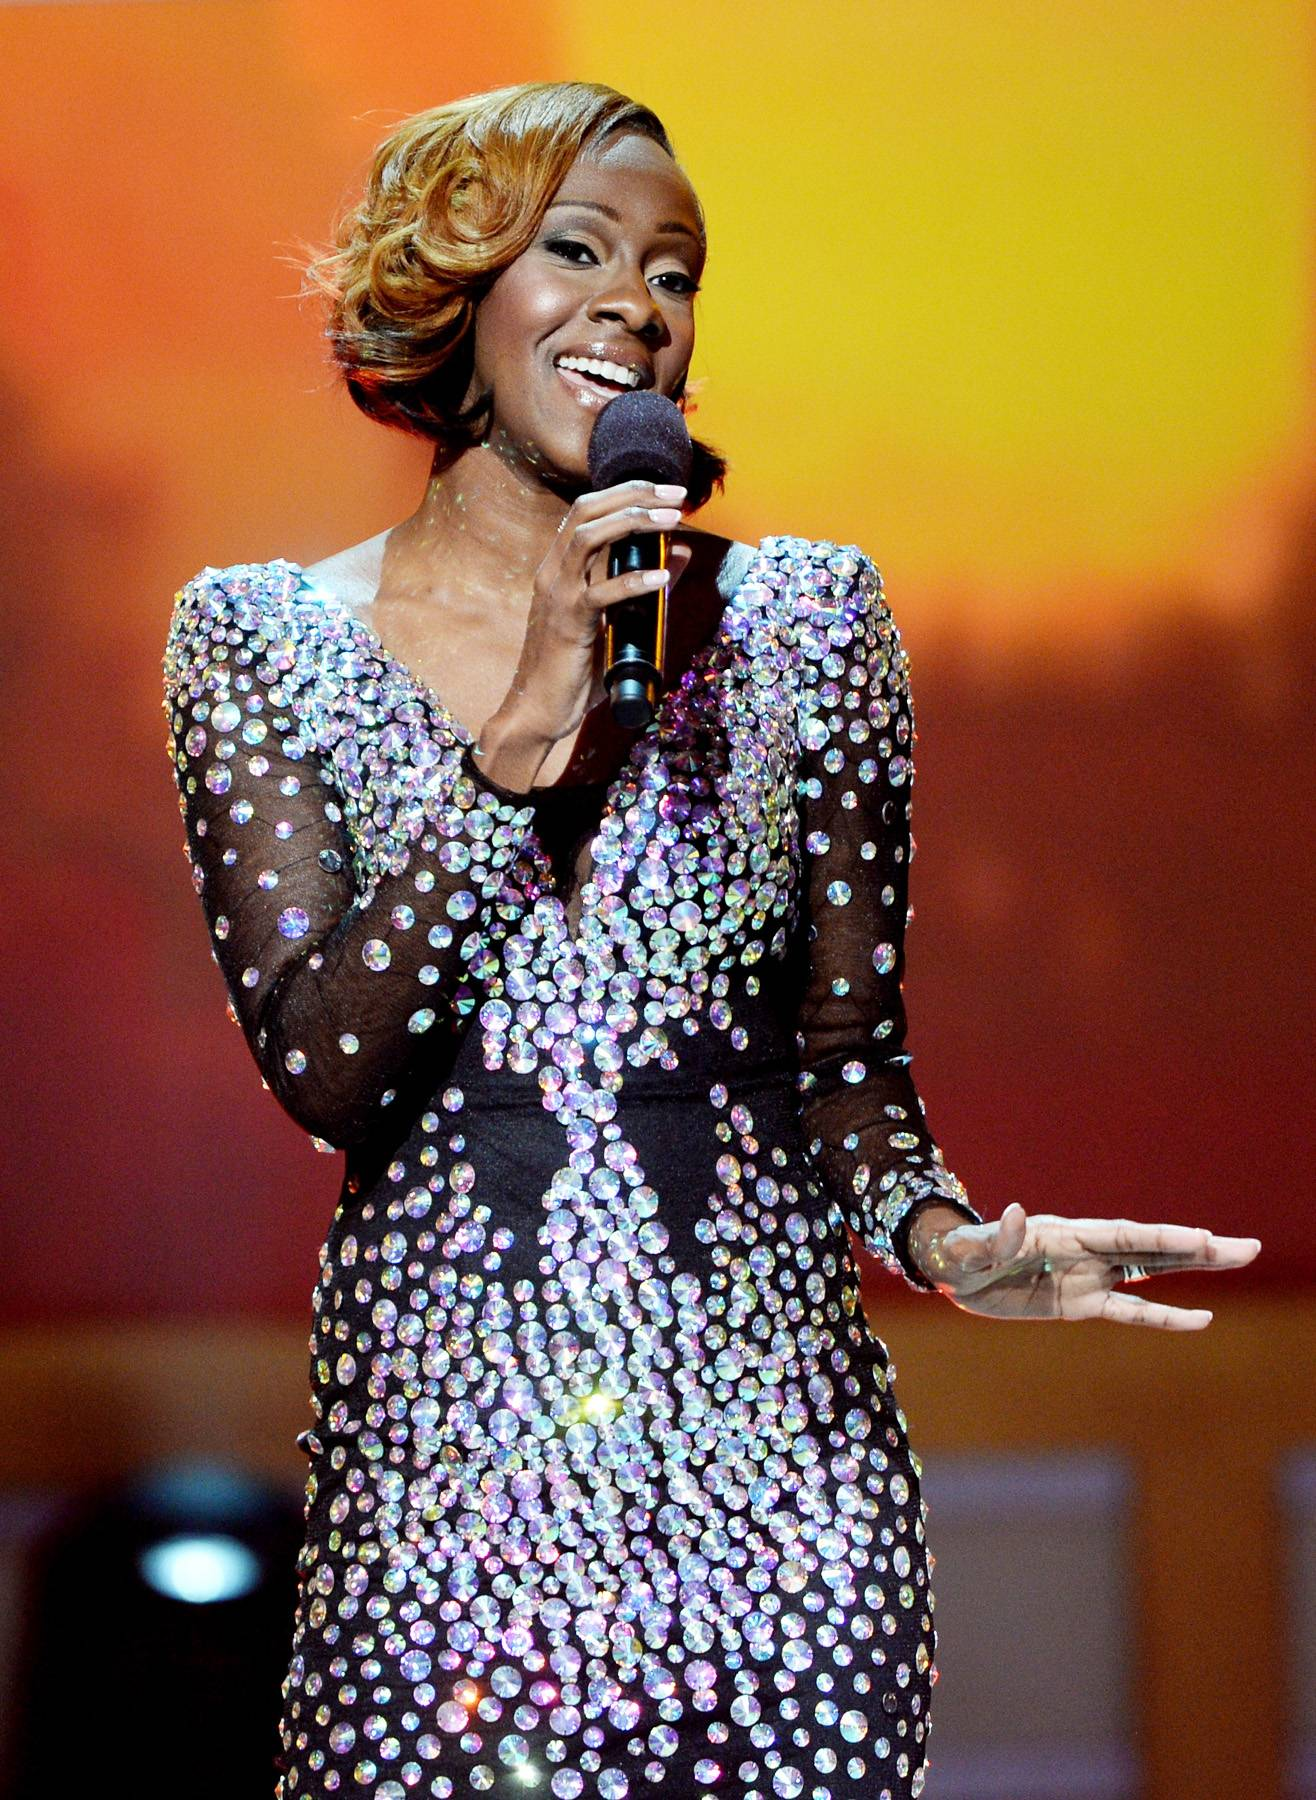 Sunday Best - BET Sunday Best winner Le'Andria Johnson lights up the stage with a sequined number and her powerhouse vocals, proving that not only is she forward in faith but she's fashion forward as well.(Photo: Jason Kempin/Getty Images for BET)